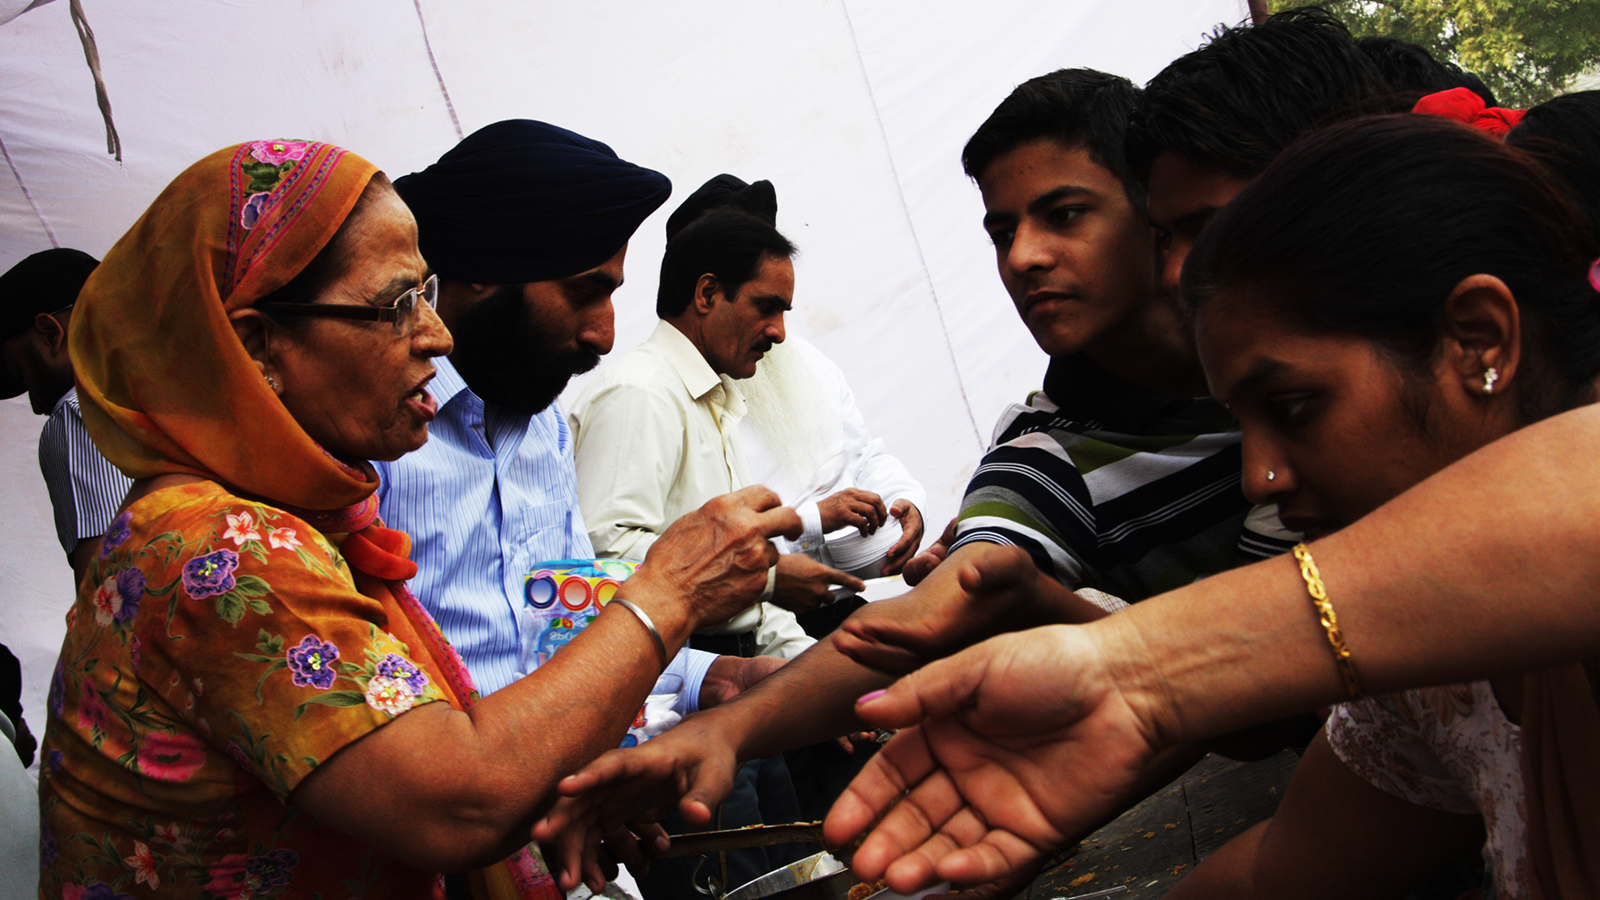 Sikh Food Distribution Tent in India